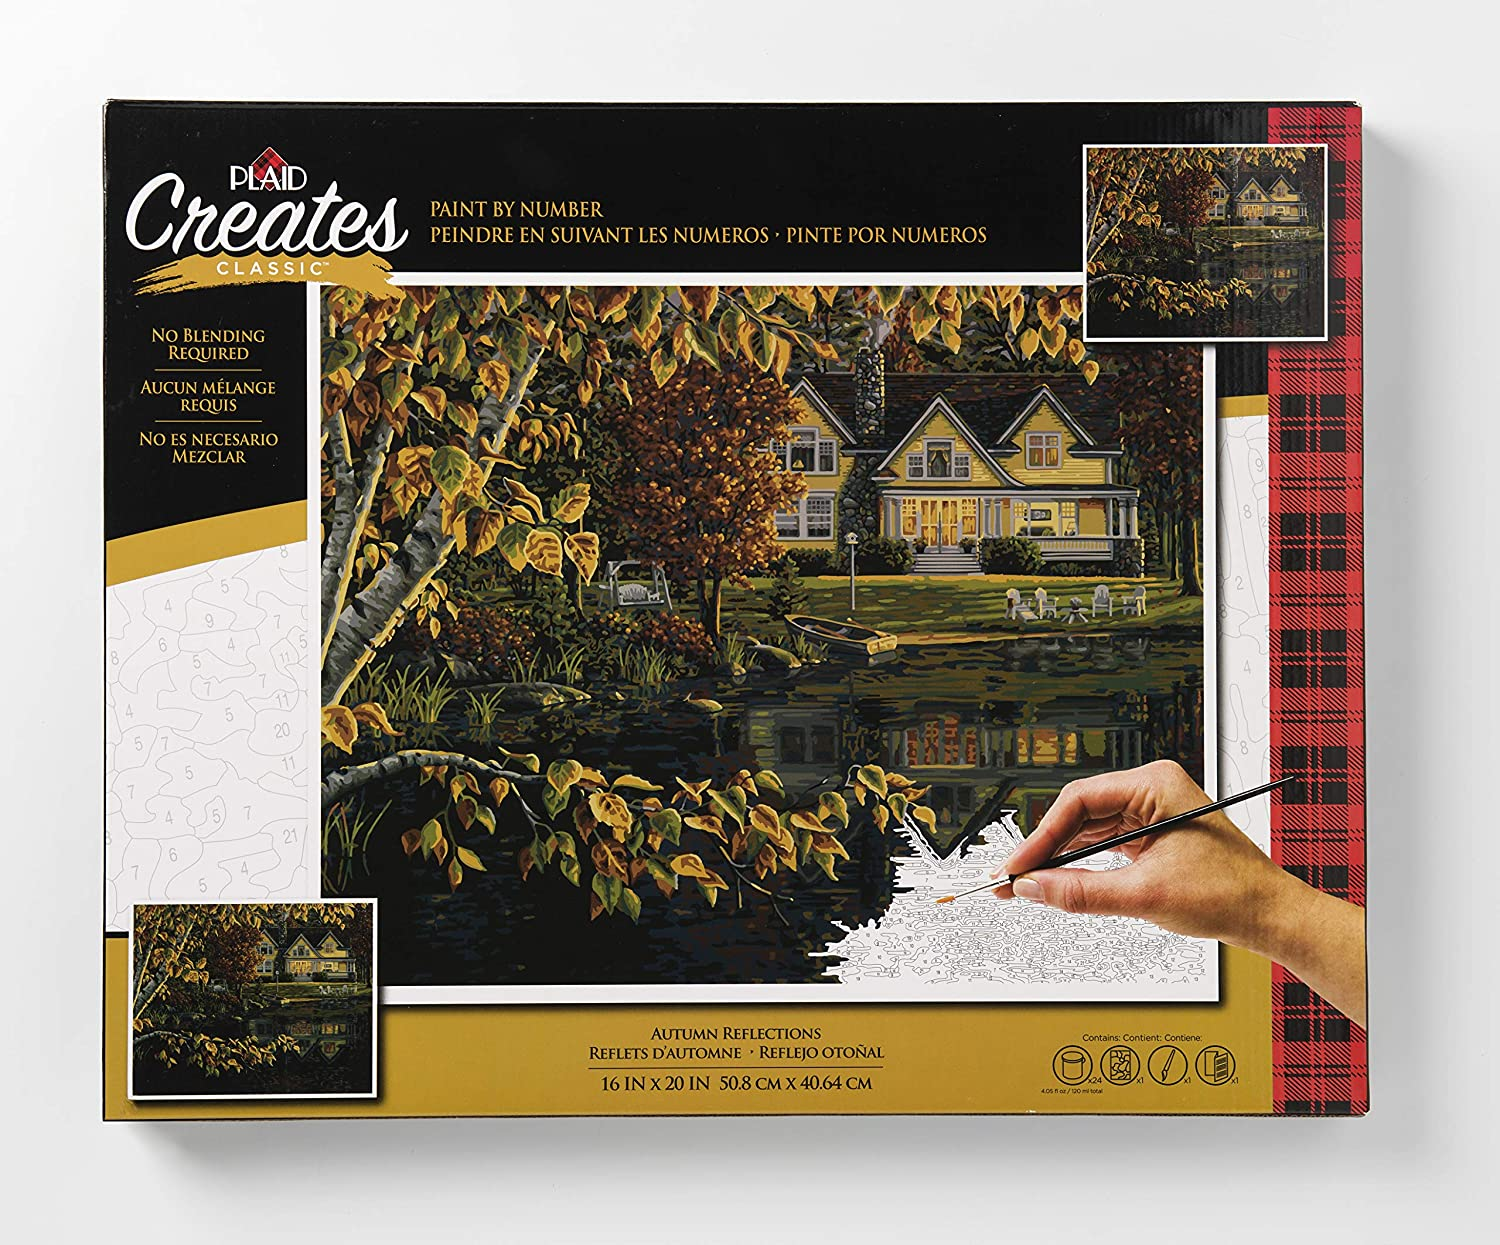 Plaid Creates Autumn Reflections Paint by Number Kit 16'X20', Multi 3 Birds 26745